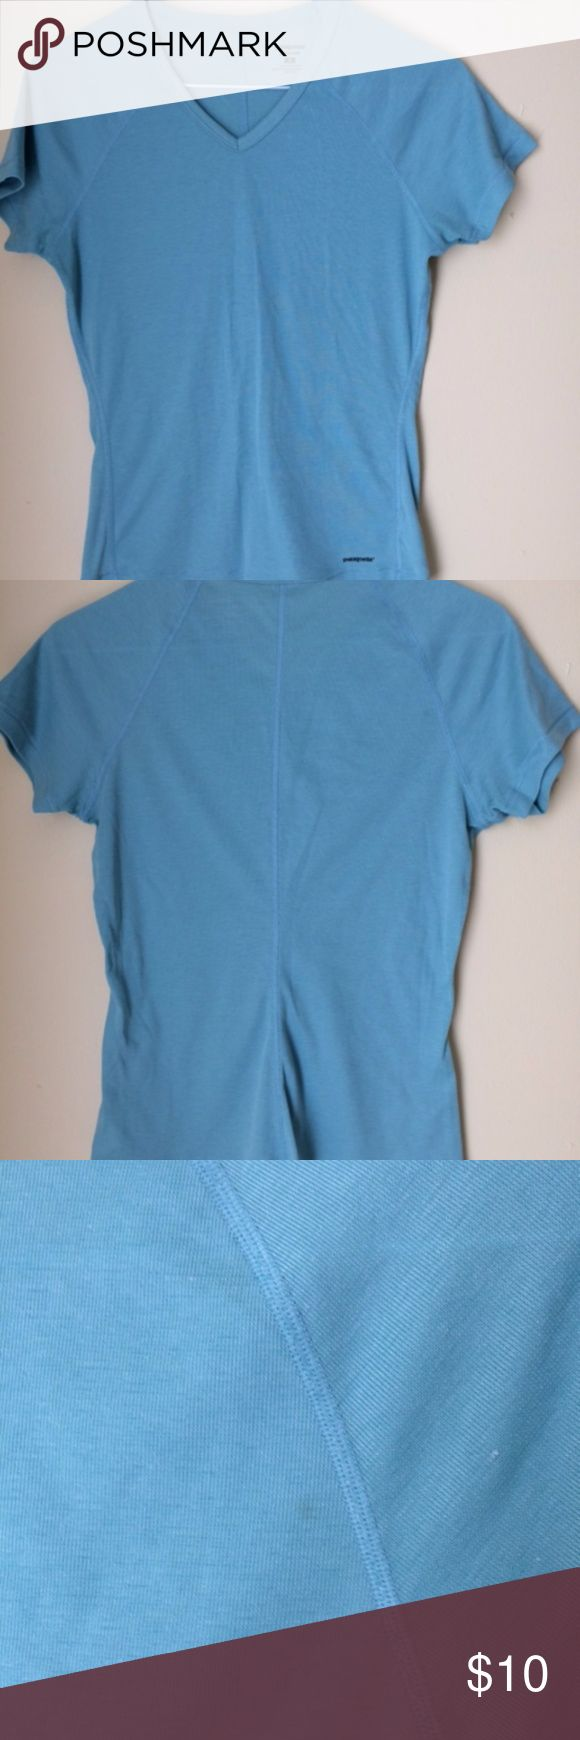 Patagonia Women's S Capilene Shirt Base Layer Light green Patagonia women's short sleeve lightweight capilene base layer top. V-neck style. In good used condition with some small marks. Please see pictures. Color is truest in last two pictures. Patagonia Tops Tees - Short Sleeve